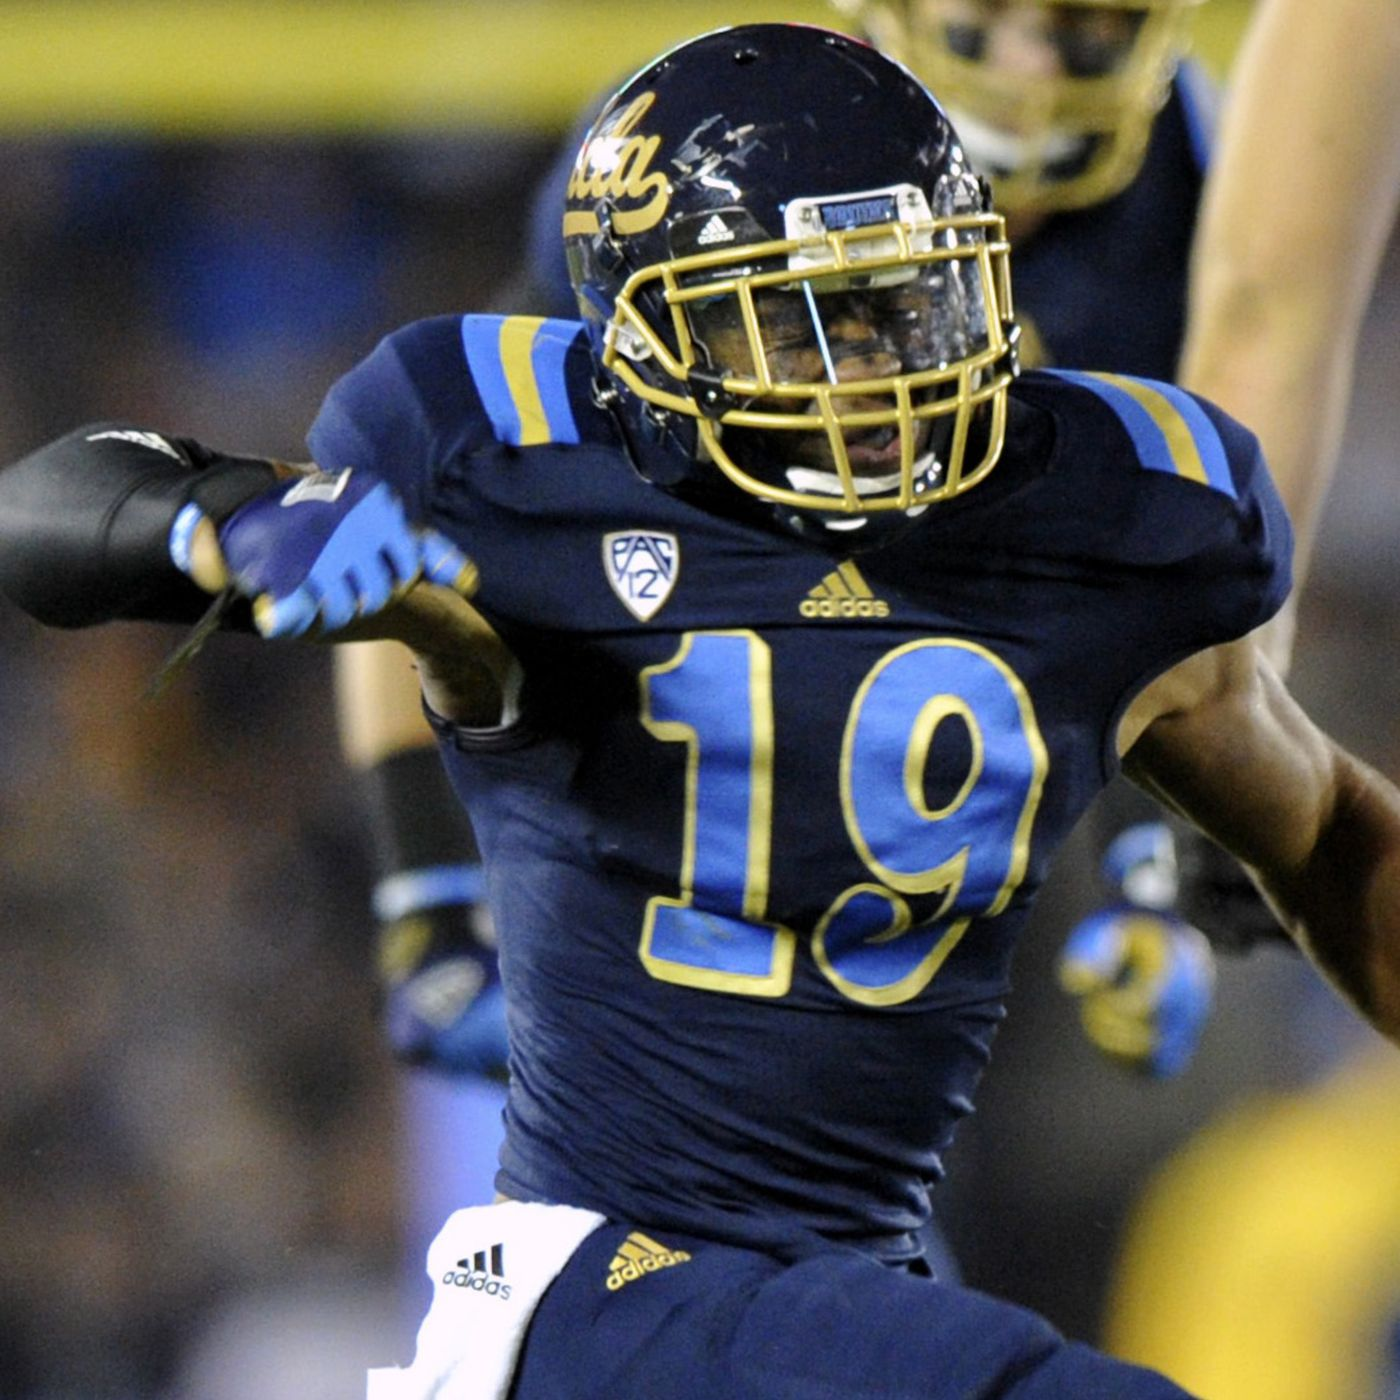 UCLA Football Uniforms: Why Do We Still Wear Block Numbers ...